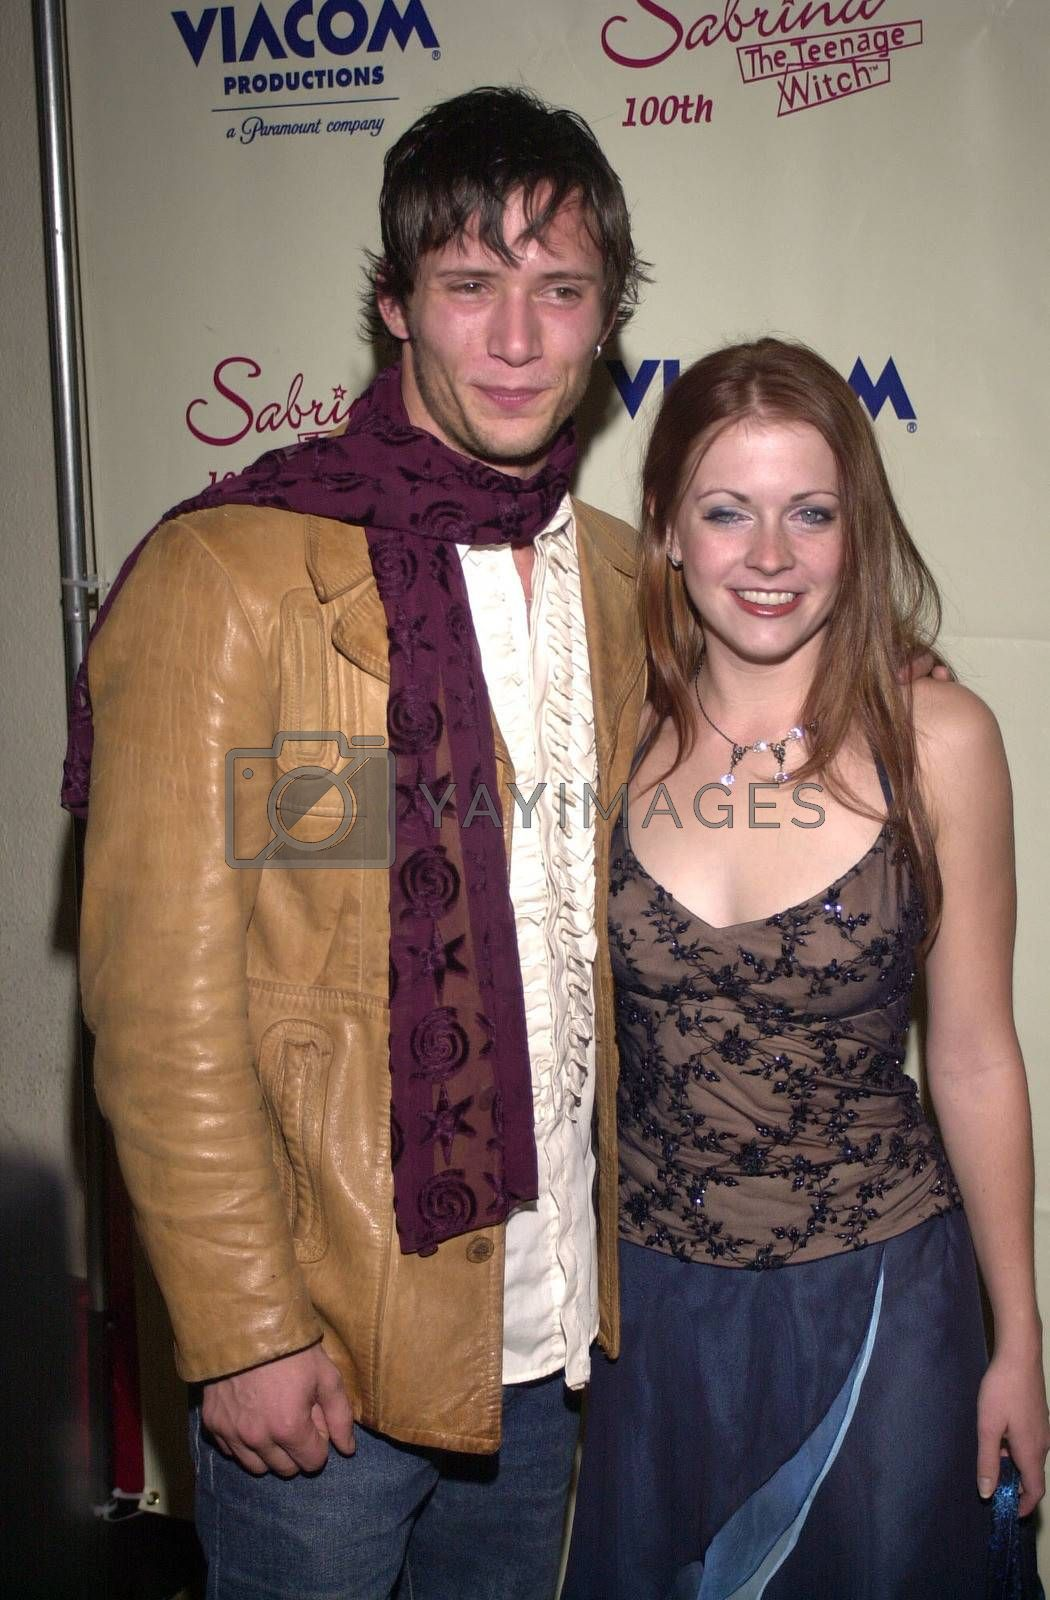 """Melissa Joan Hart and boyfriend at the party to celebrate the 100th episode of """"Sabrina the Teenage Witch"""" in Hollywood, 10-23-00"""